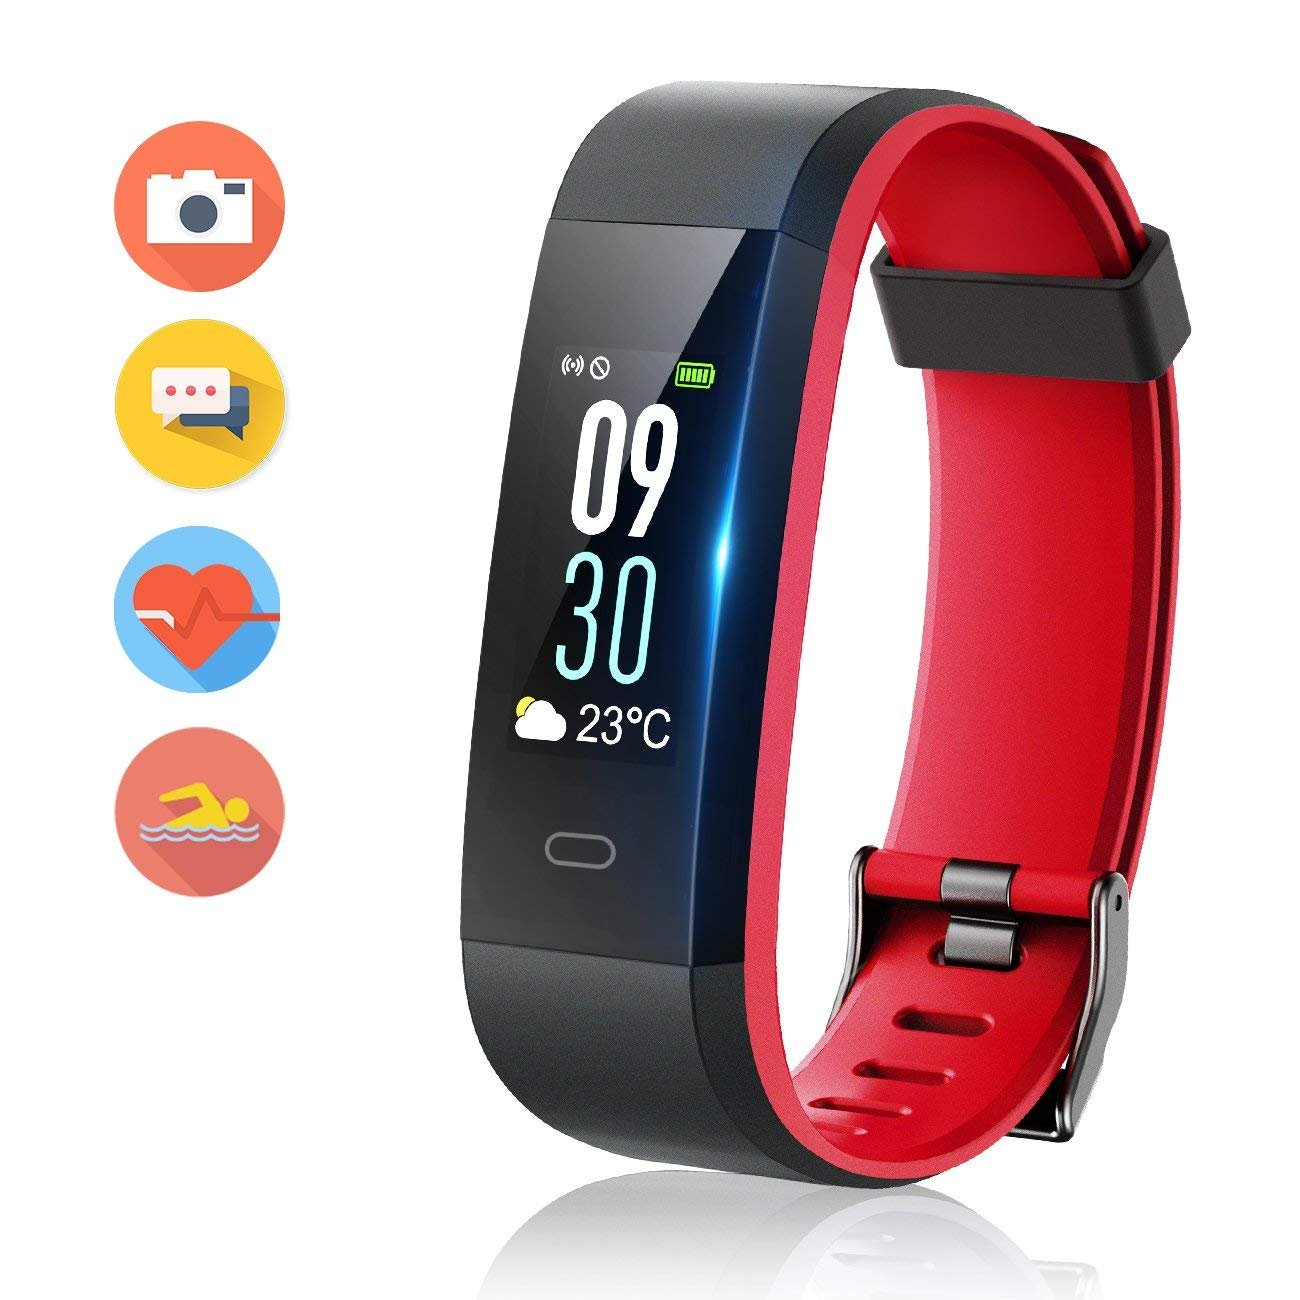 Vigorun Fitness Tracker Color Screen, Activity Tracker with Heart Rate Monitor Watch, IP68 Waterproof, Sleep Monitor, Step Calorie Counter, Pedometer Wristband for Women Men Kids by Vigorun